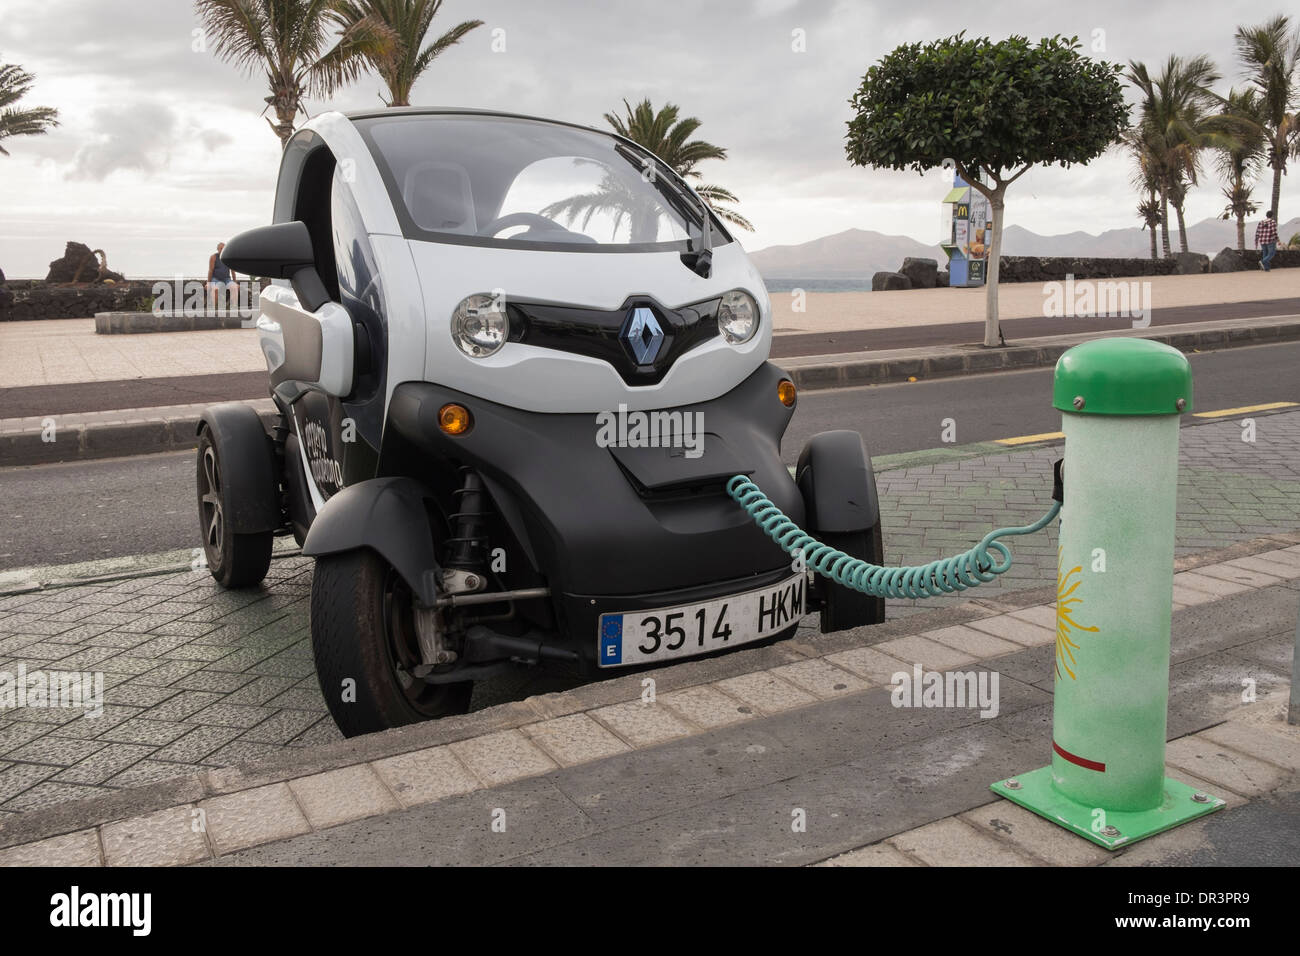 Renault Twizy battery-powered electric car plugged in to a Sol-lar battery charging point on roadside in Canary Islands, Spain - Stock Image